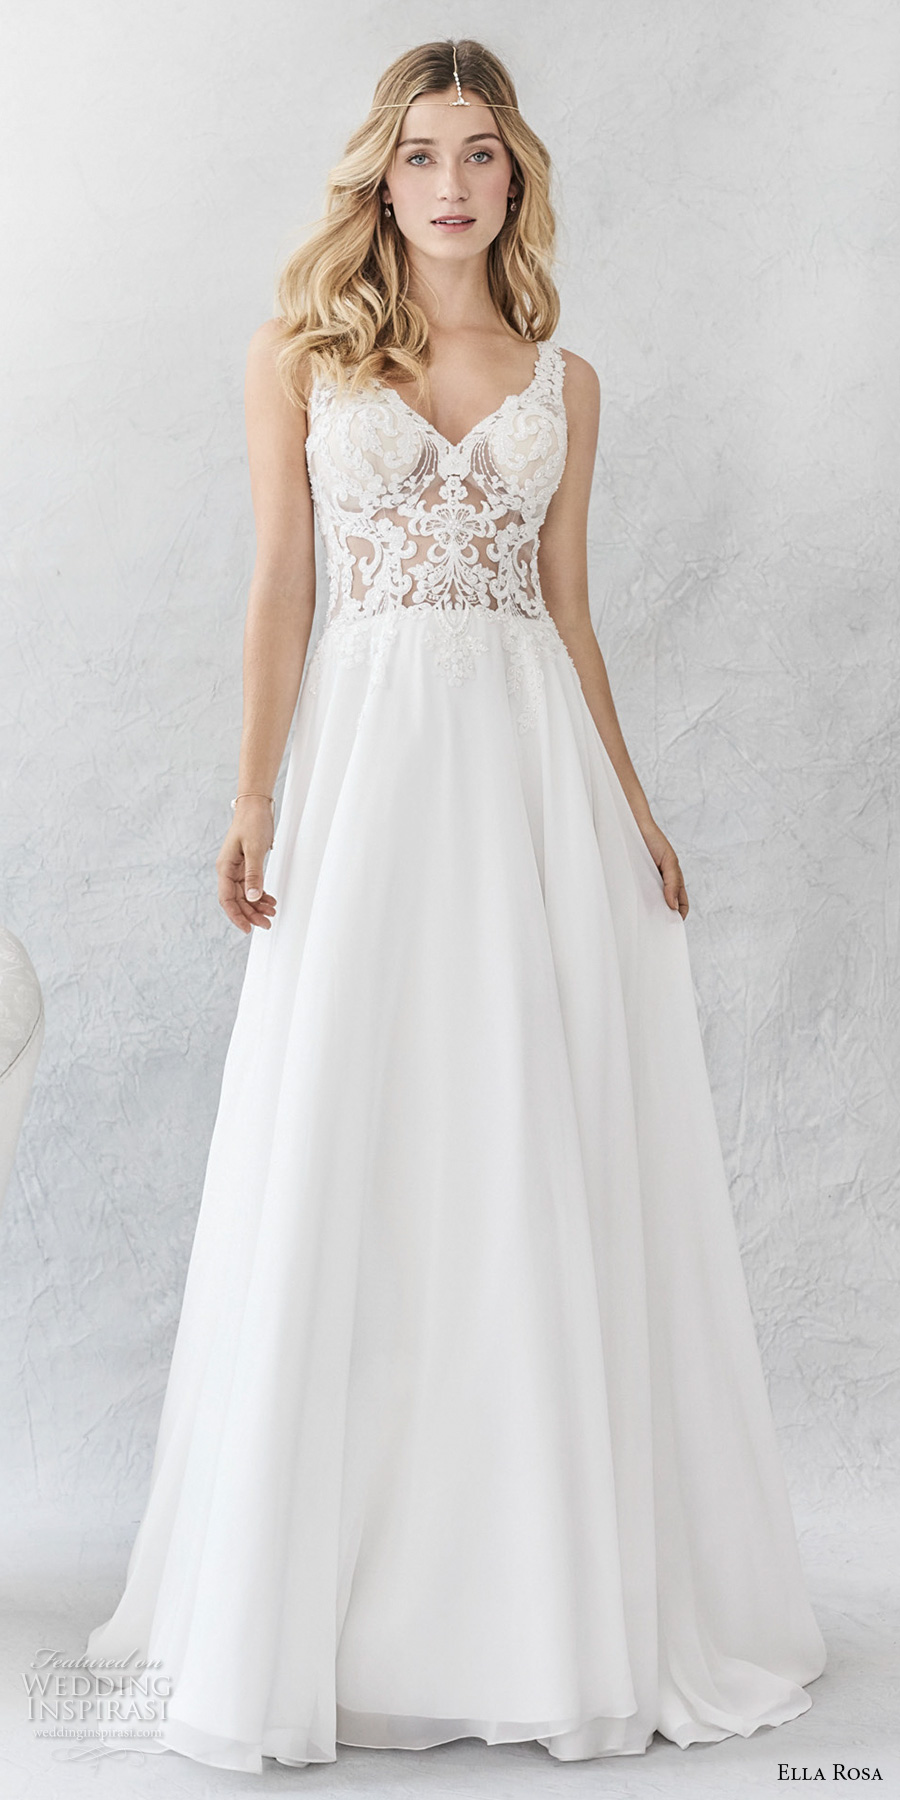 ella rosa spring 2017 bridal sleeveless embroidered strap v neck heavily embroidered bodice romantic modified a line wedding dress open v back chapel train (379) mv